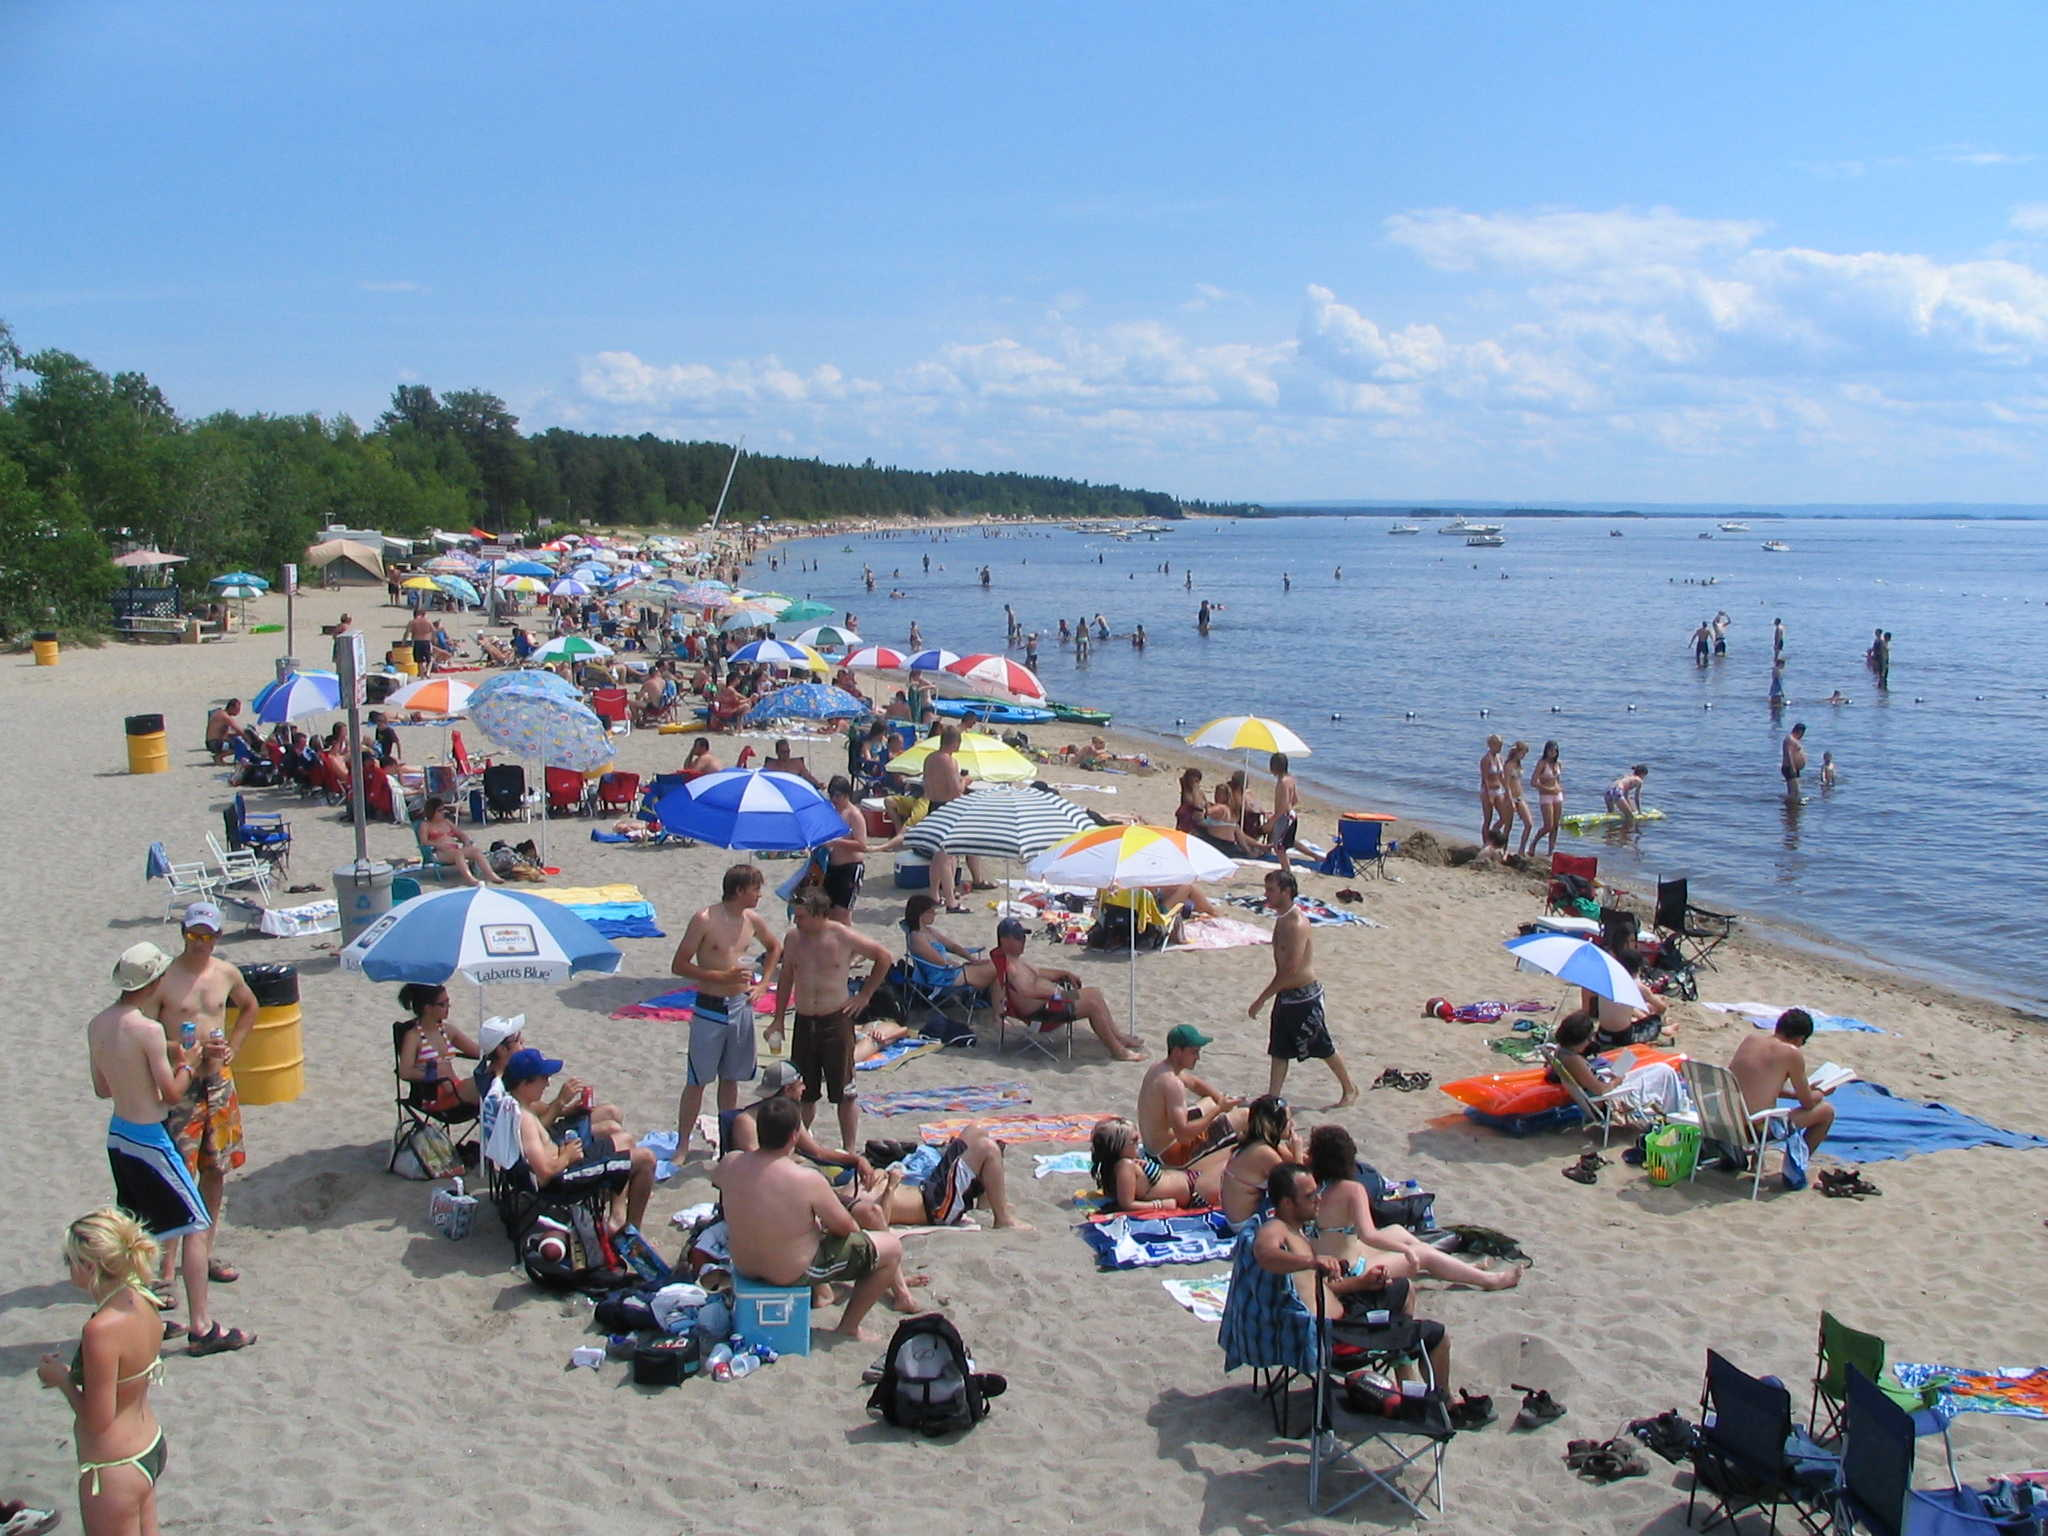 Camping plage belley tourisme saguenay lac st jean for Plan de belley